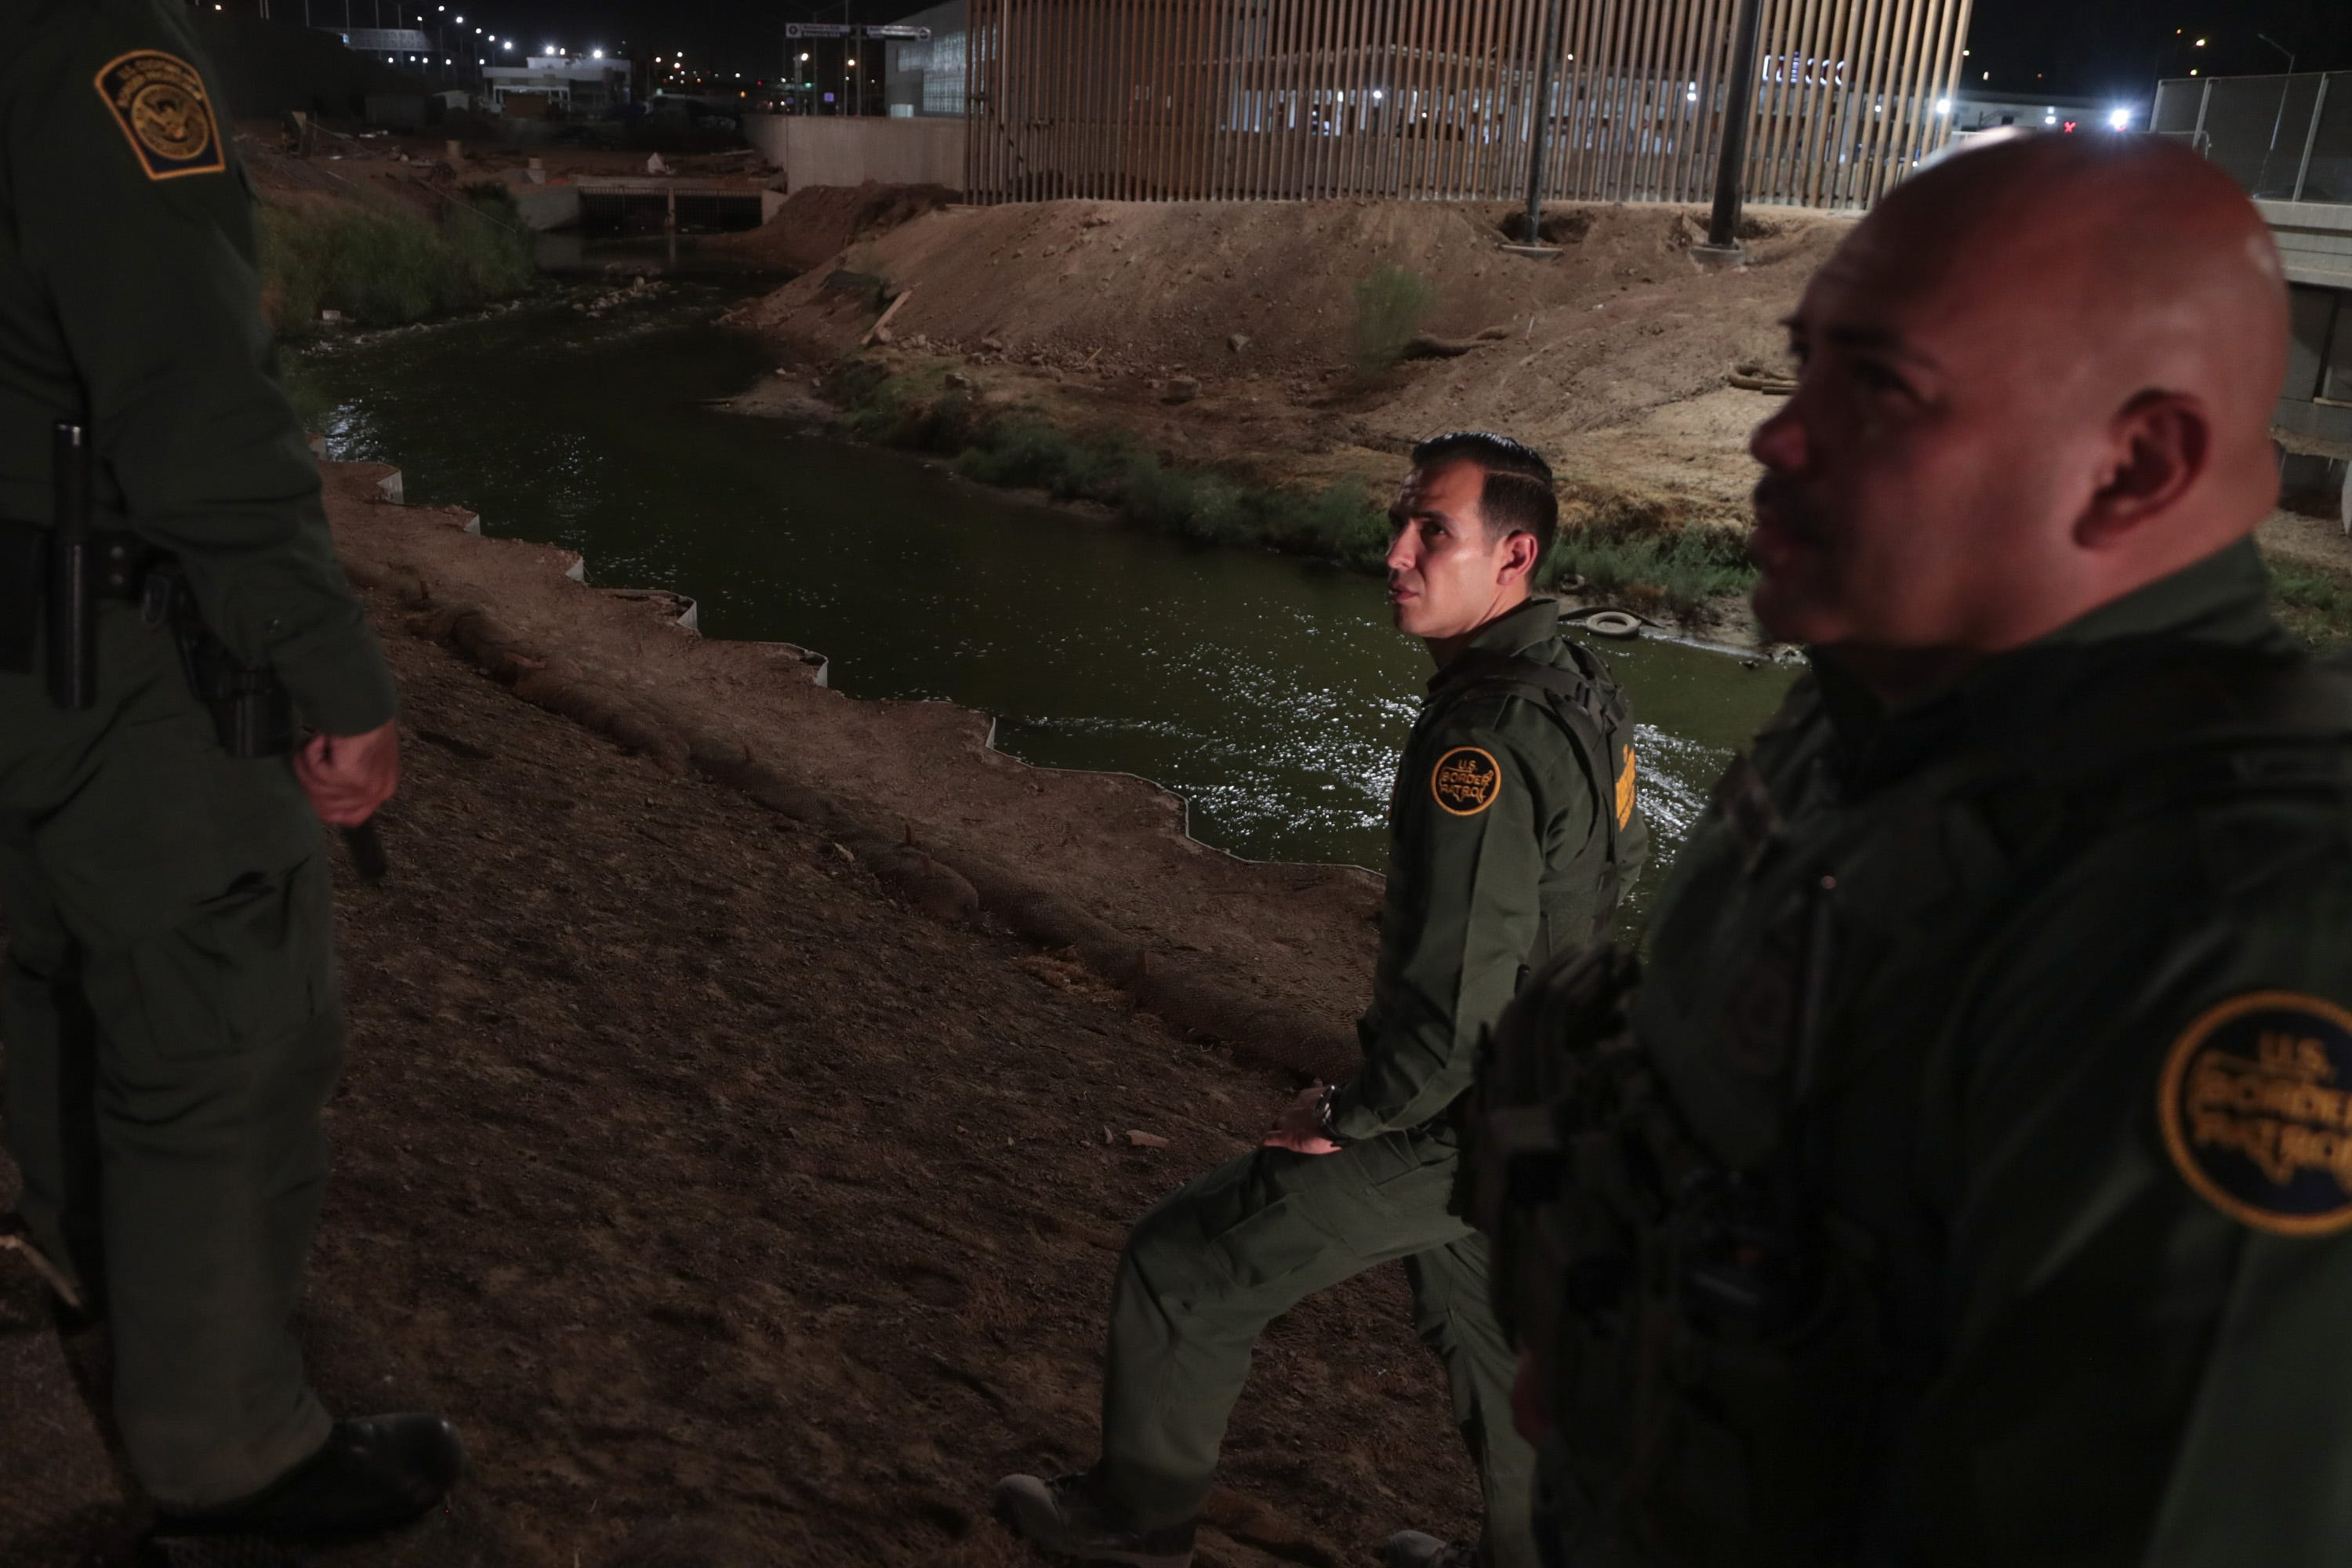 Border Patrol agents Ruben Sigala, center, and Jose Enriquez, right, talk with other agents while patrolling the New River in Calexico on Sept. 19, 2018.